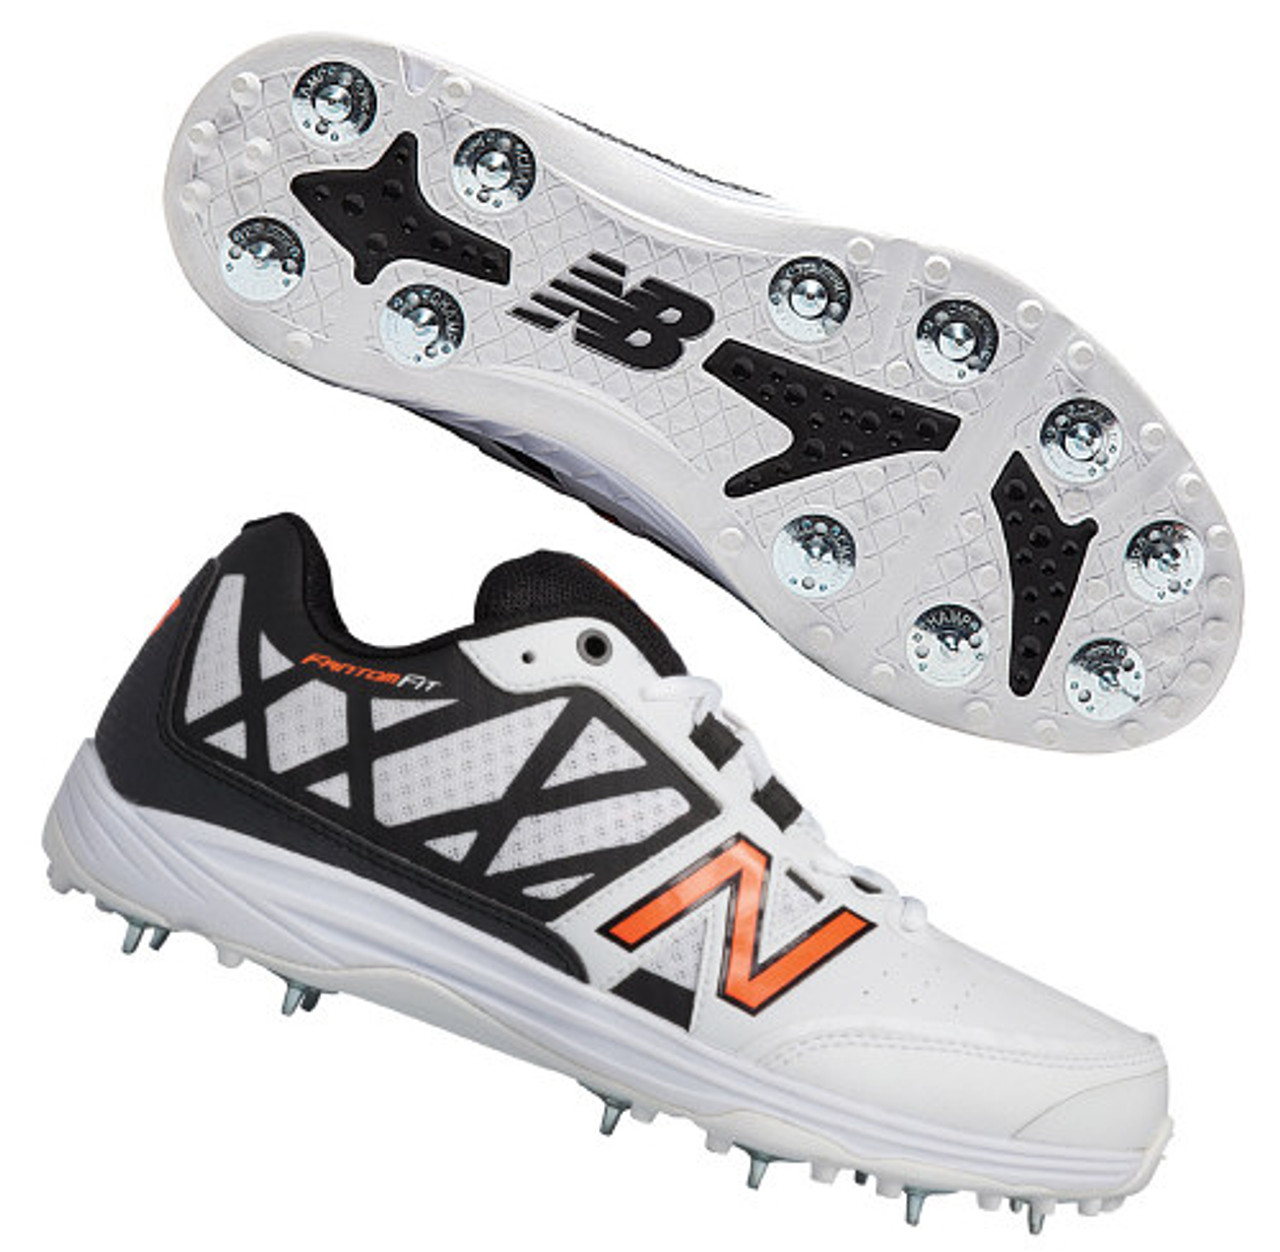 8cd9990ddb9ac New Balance CK10BD2 Cricket Shoes - Spikes | New Balance